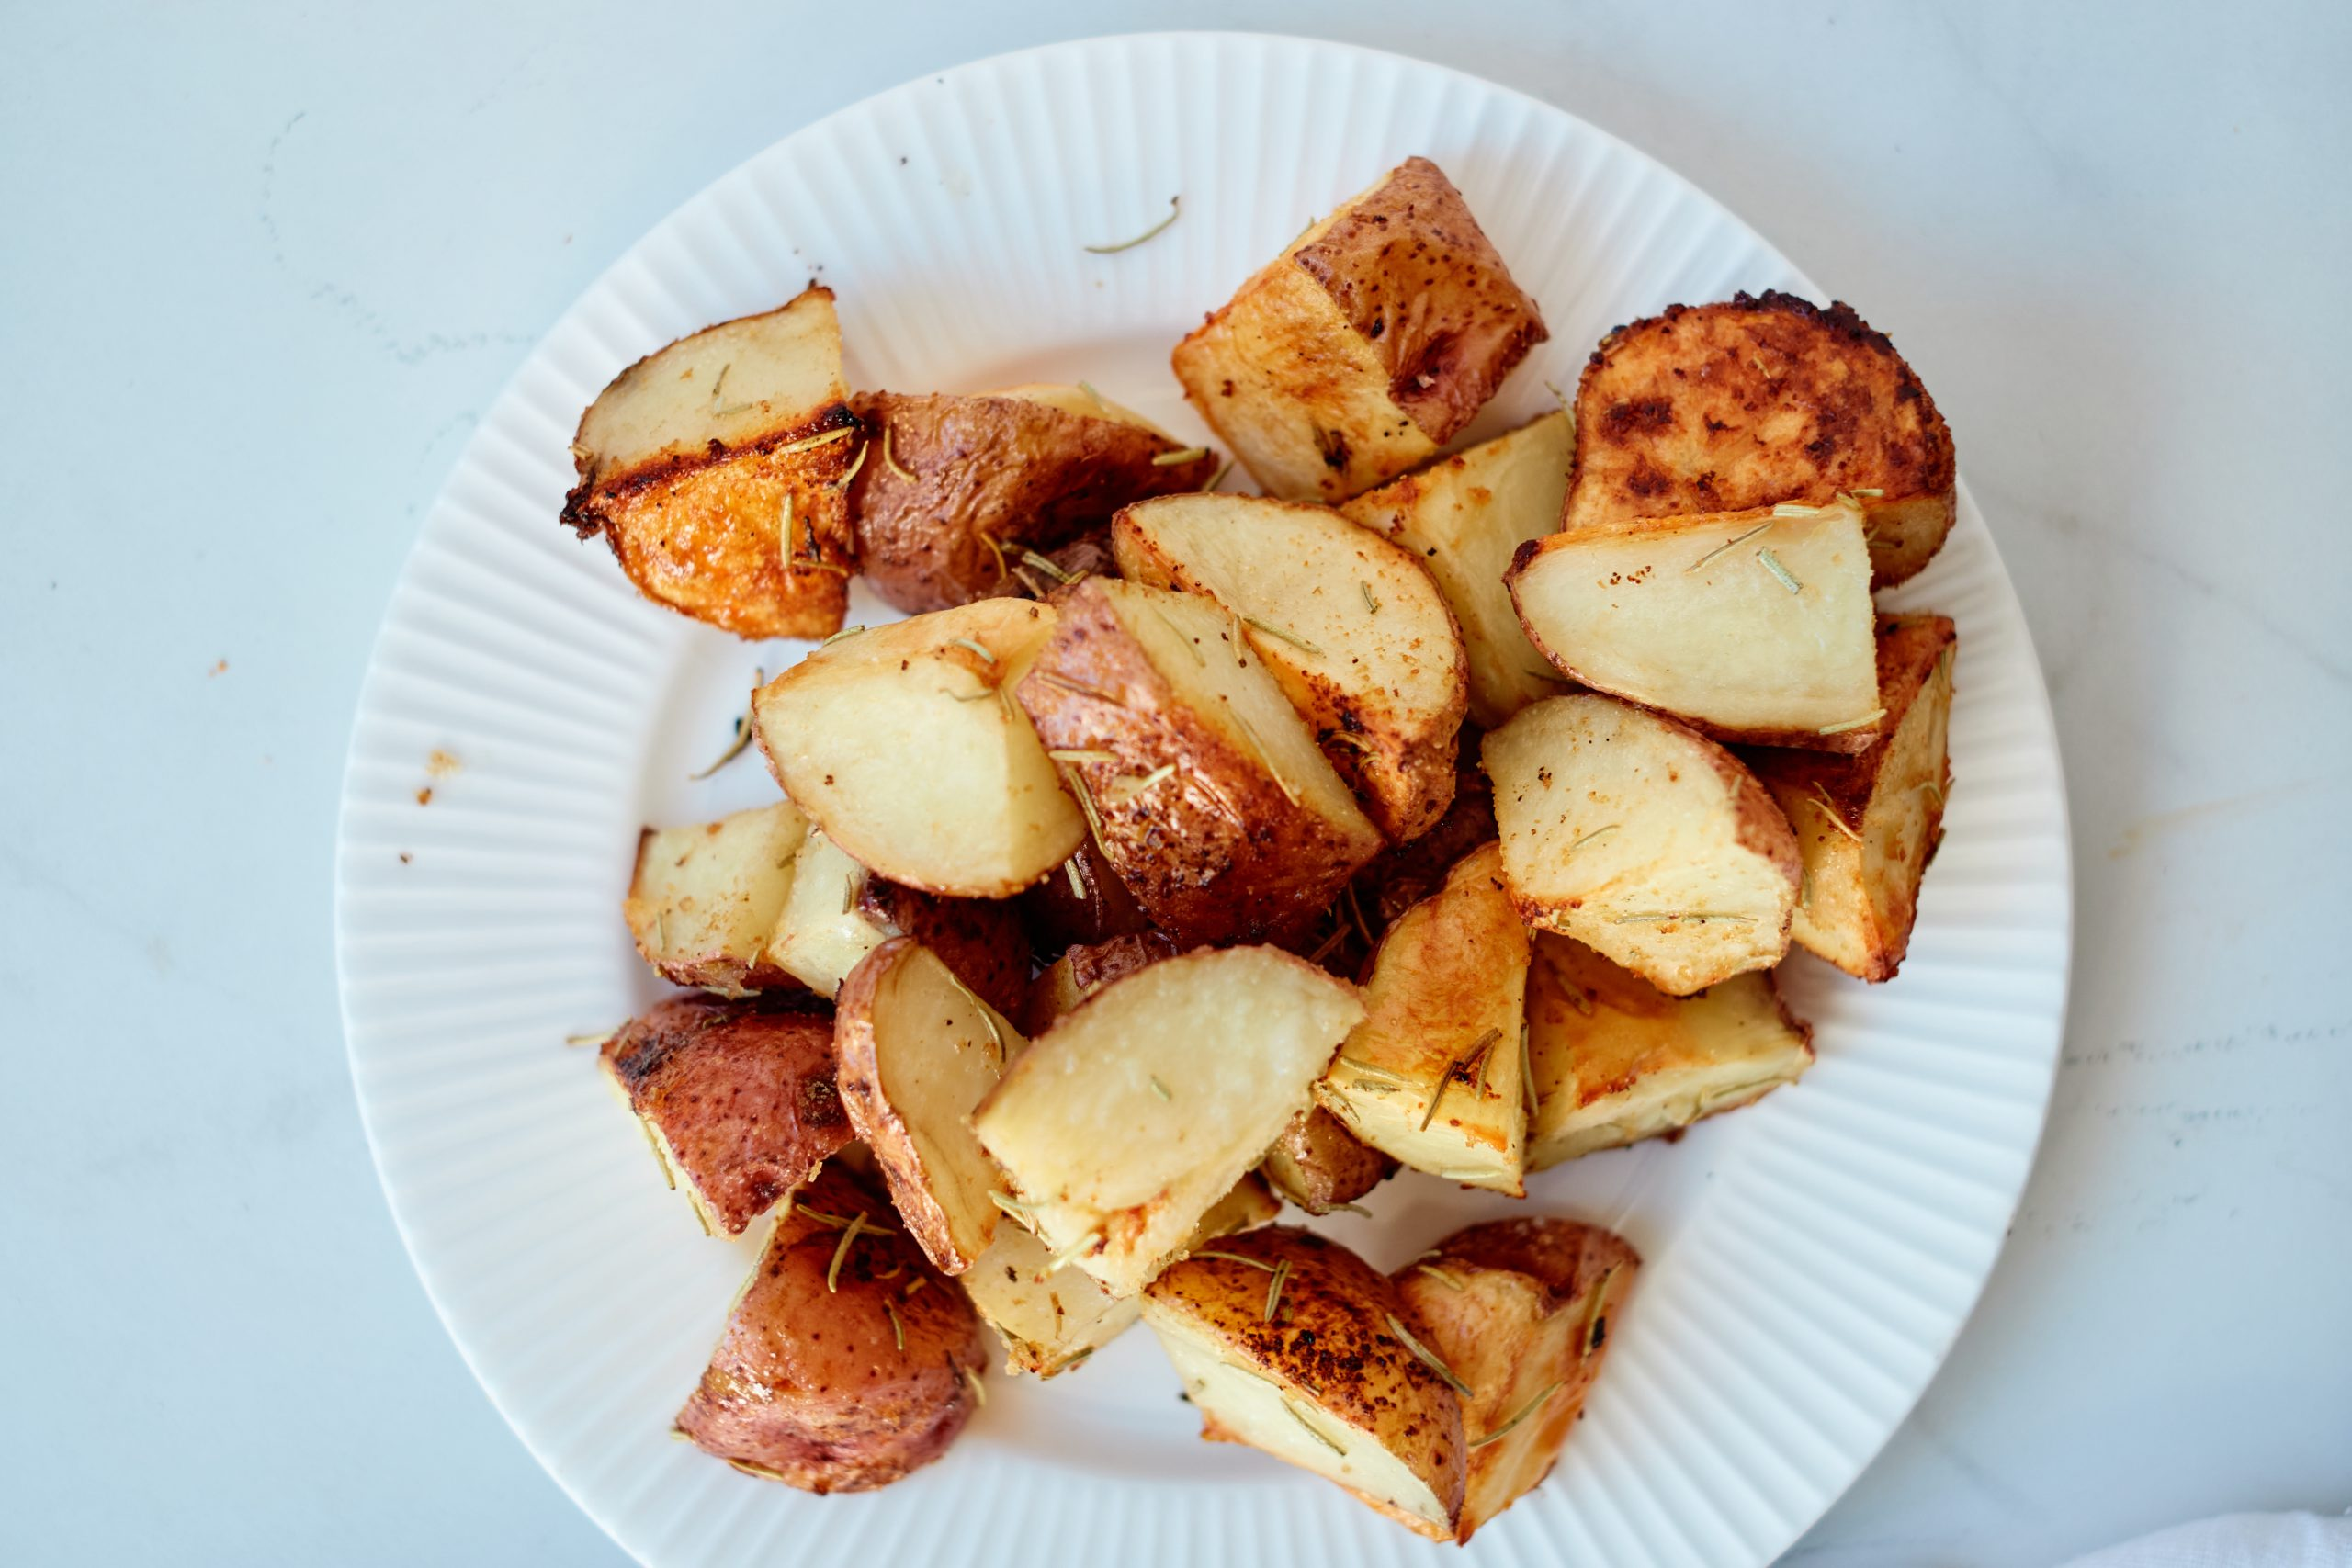 roasted potatoes with rosemary and garlic on a white plate